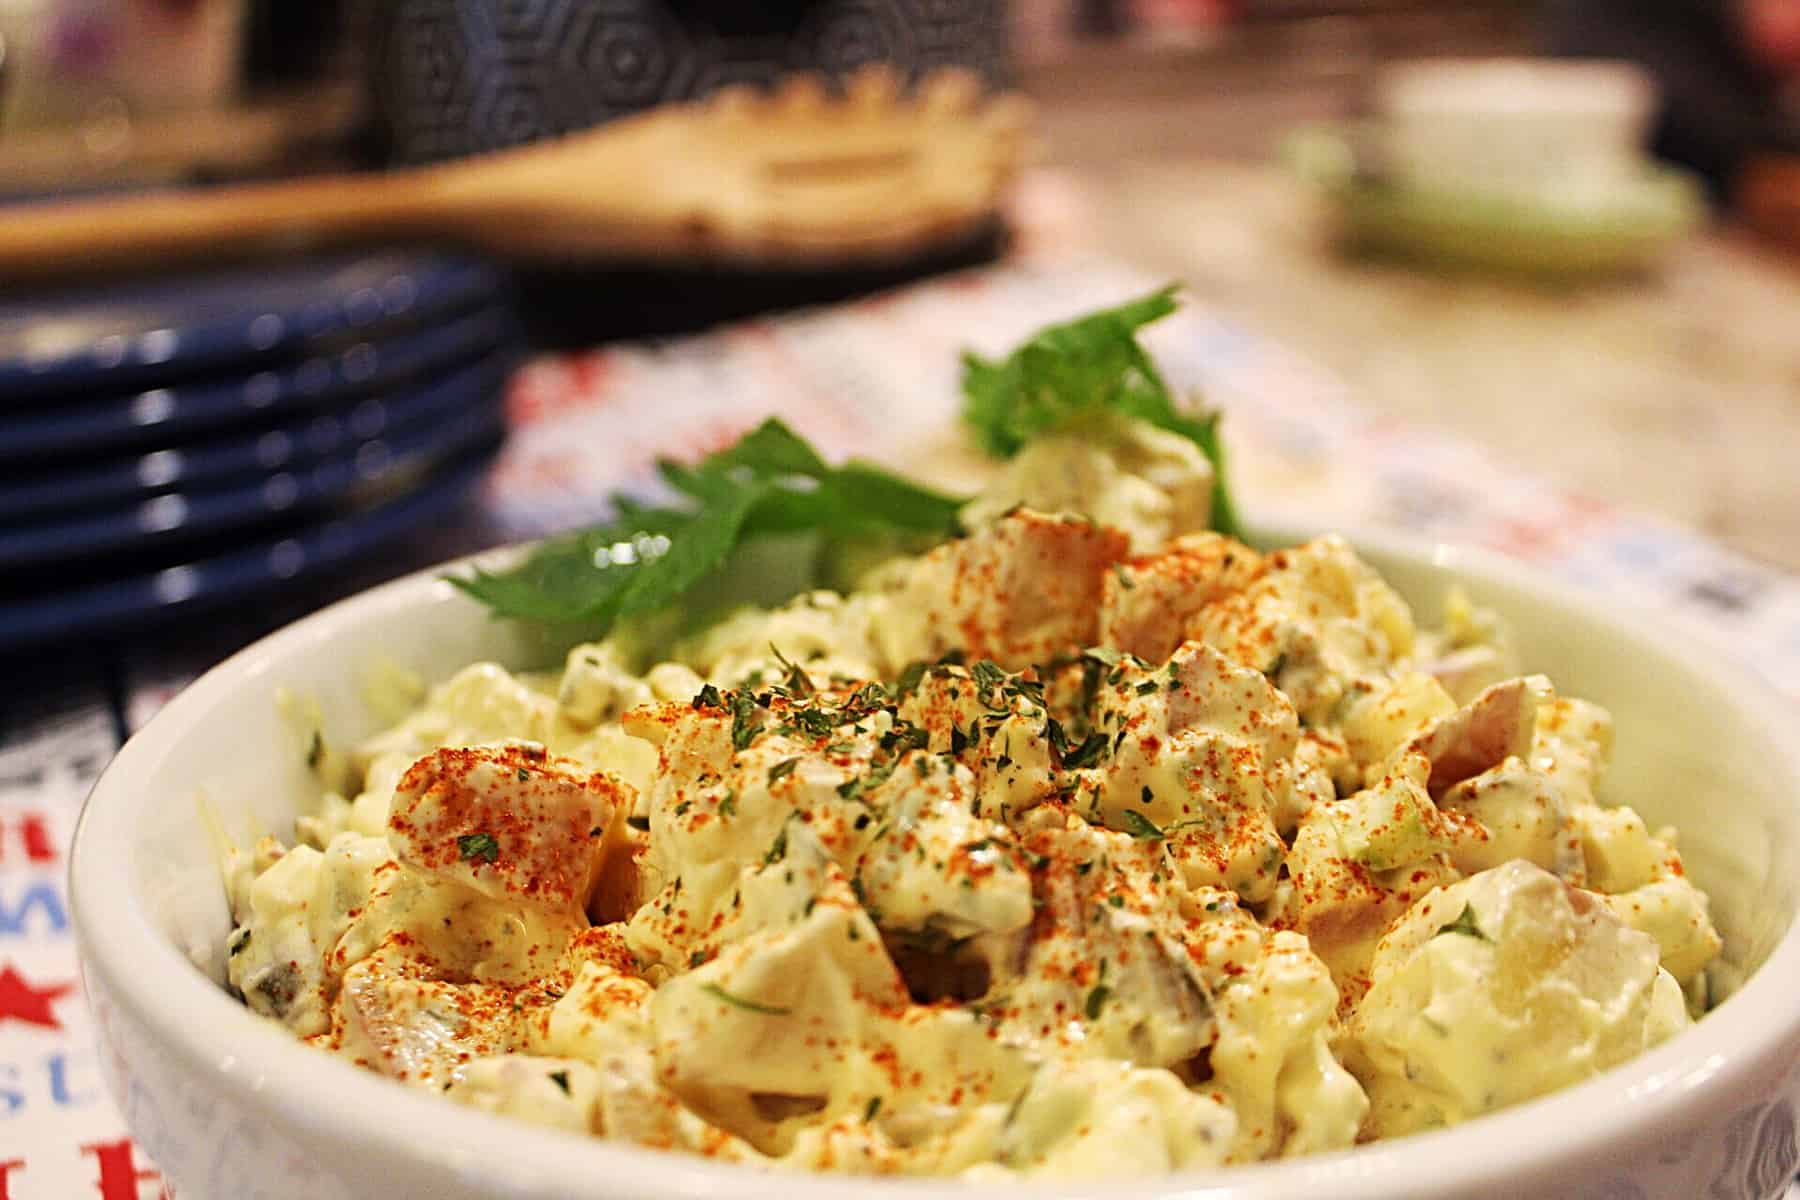 potato salad in a bowl, with parsley garnish